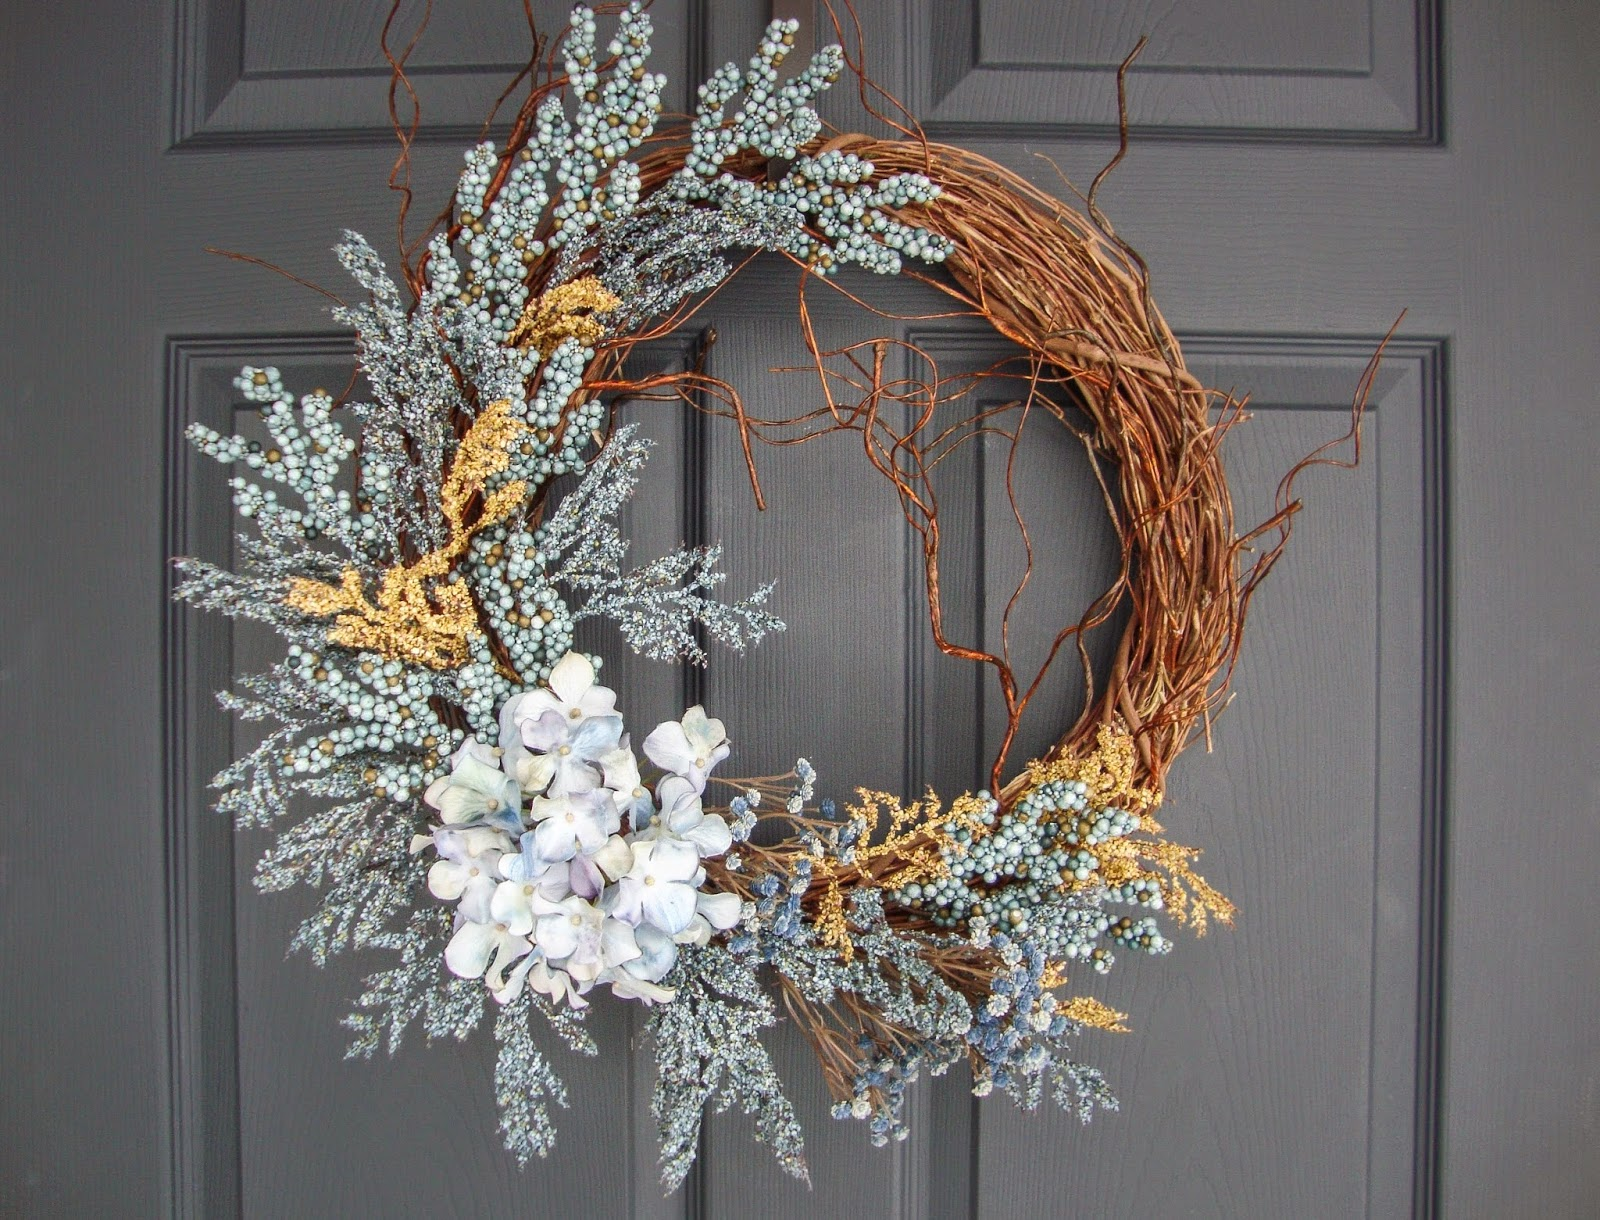 RUSTIC WREATH New Design From HomeHearthGarden